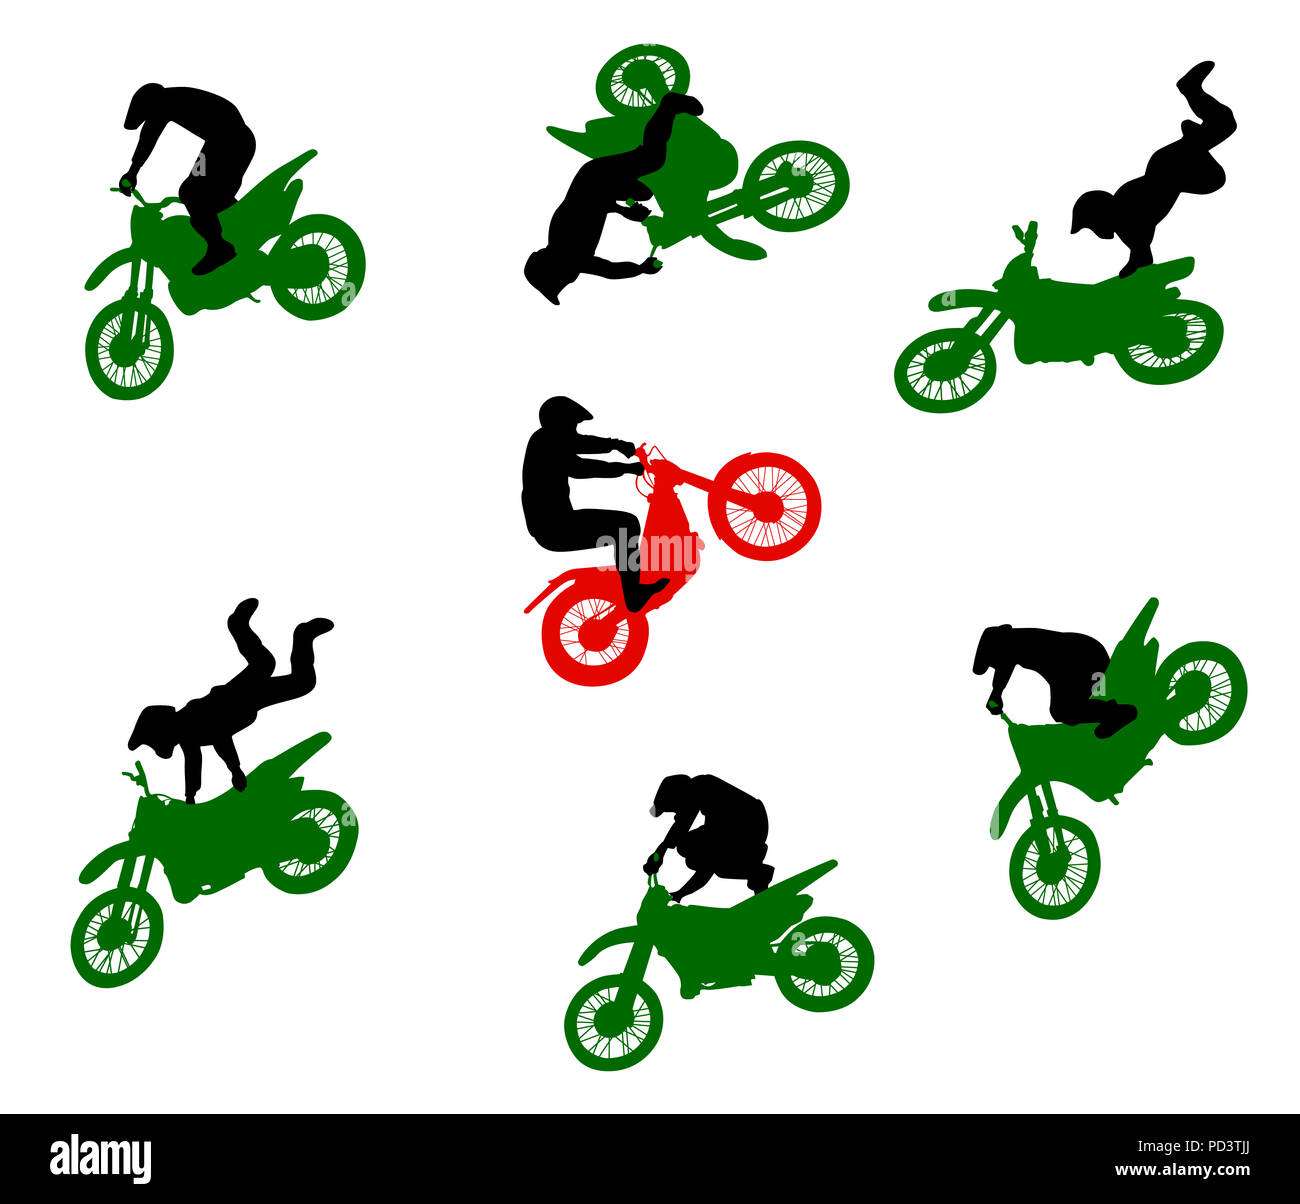 Silhouettes of stuntmen on motorcycles in flight. - Stock Image